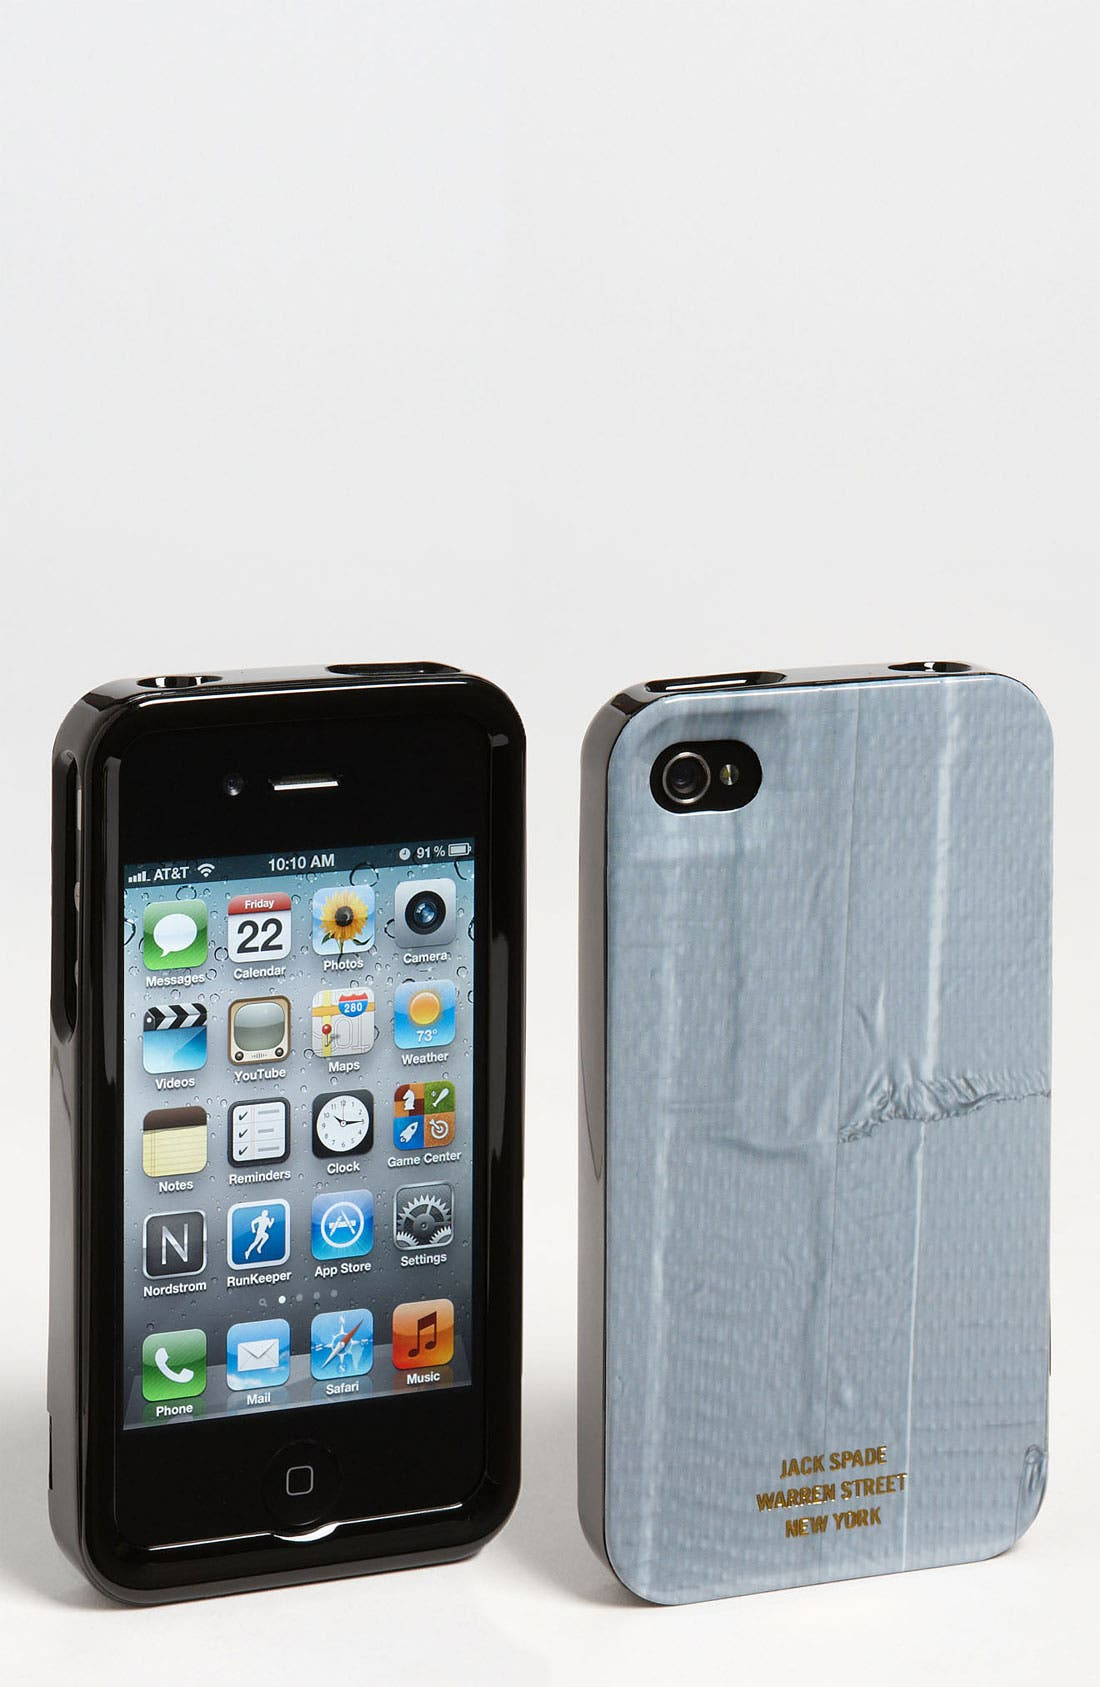 Main Image - Jack Spade 'Duct Tape' iPhone 4 & 4S Case